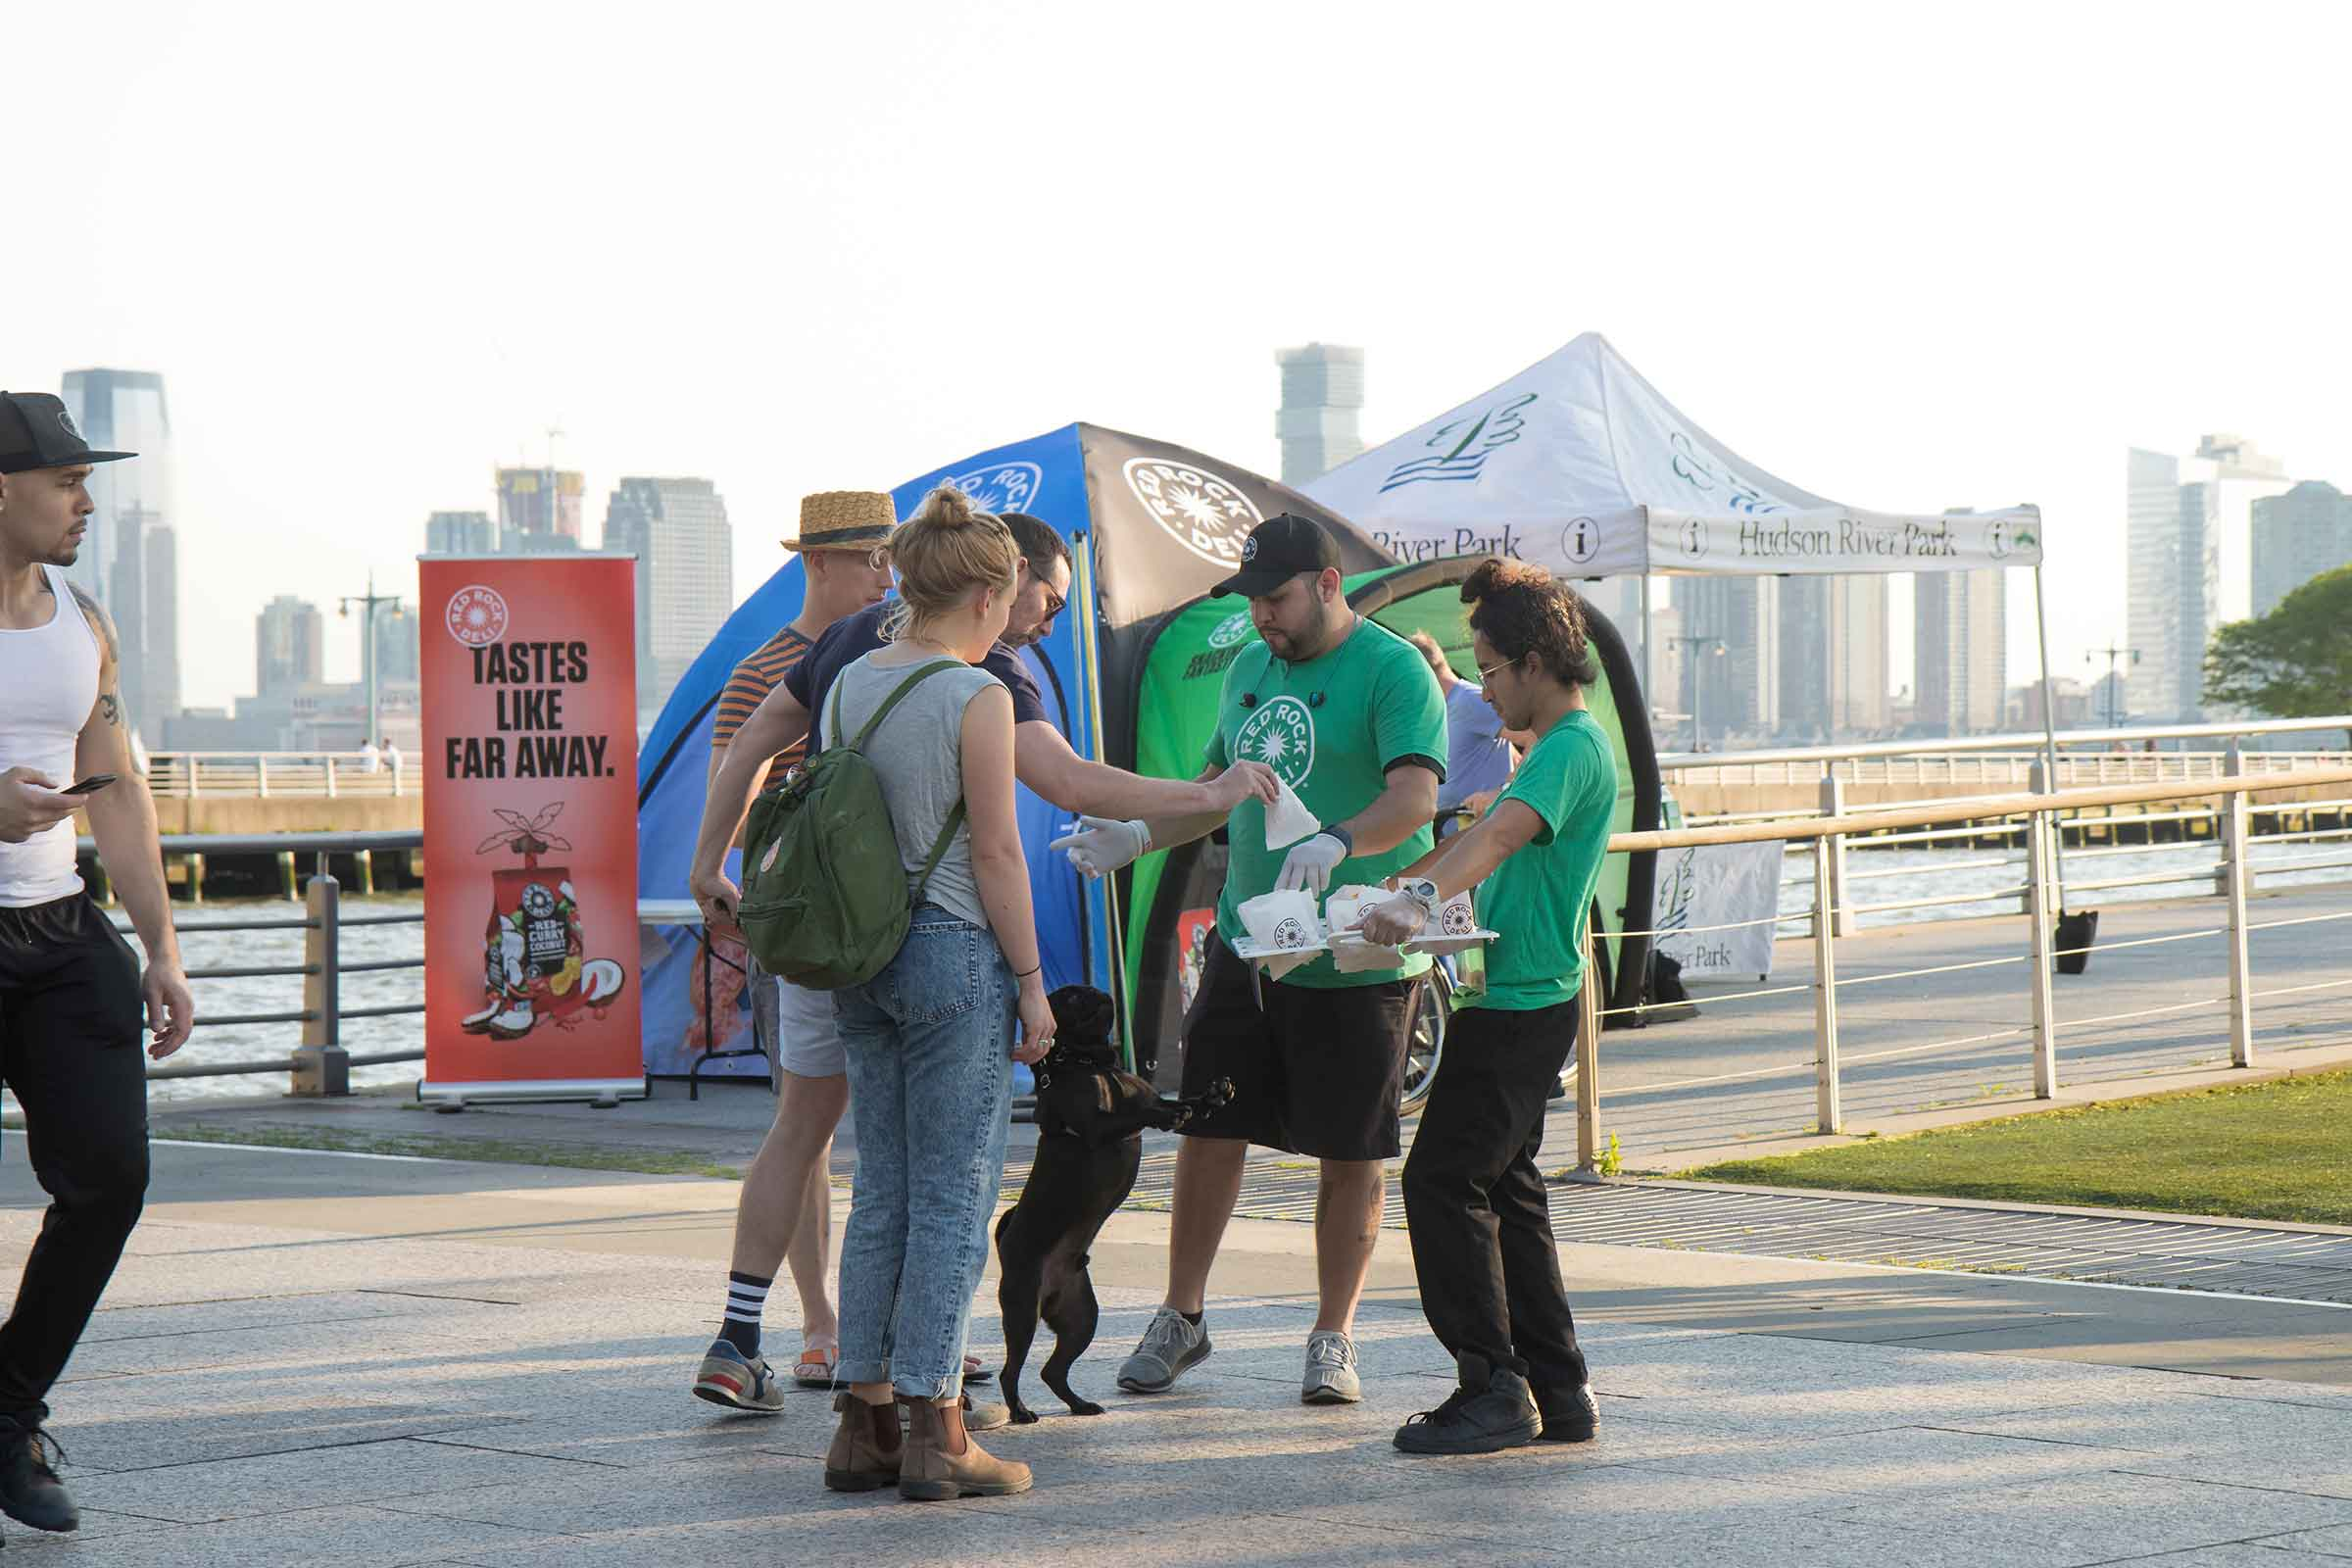 Red Rock Deli provides snacks to park visitors at some of the events in Hudson River Park